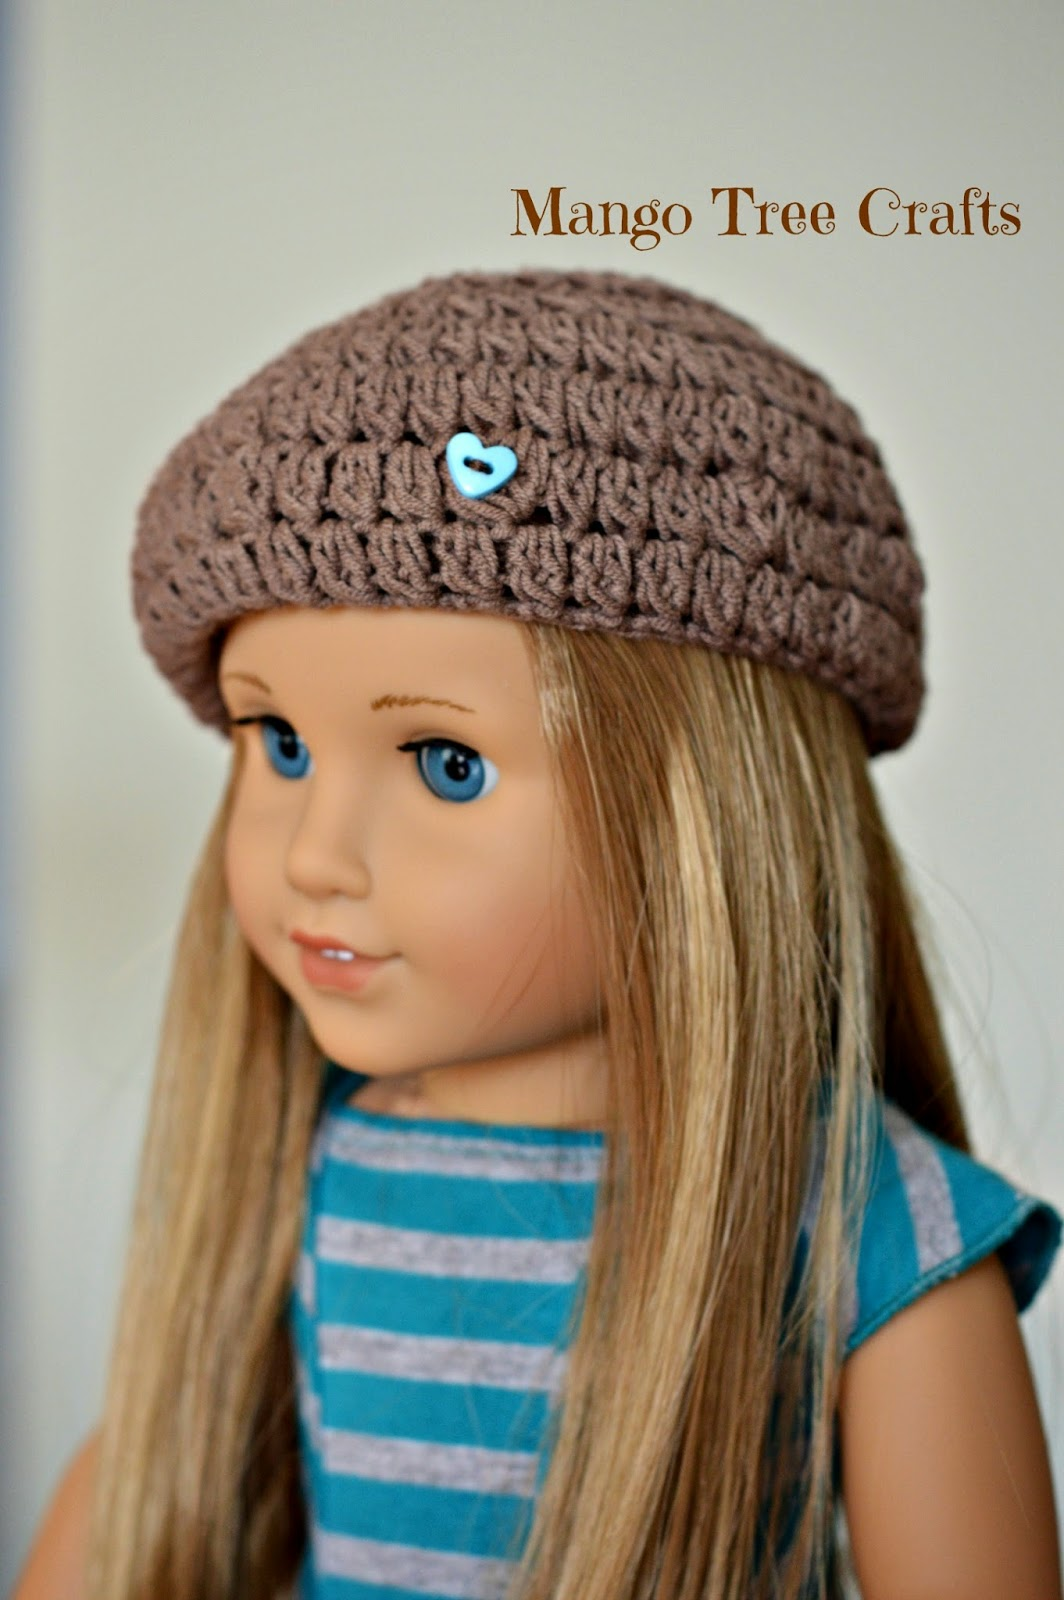 Crochet Hat Pattern American Girl Doll : Mango Tree Crafts: Crochet Beret Hat Pattern for 18 ...